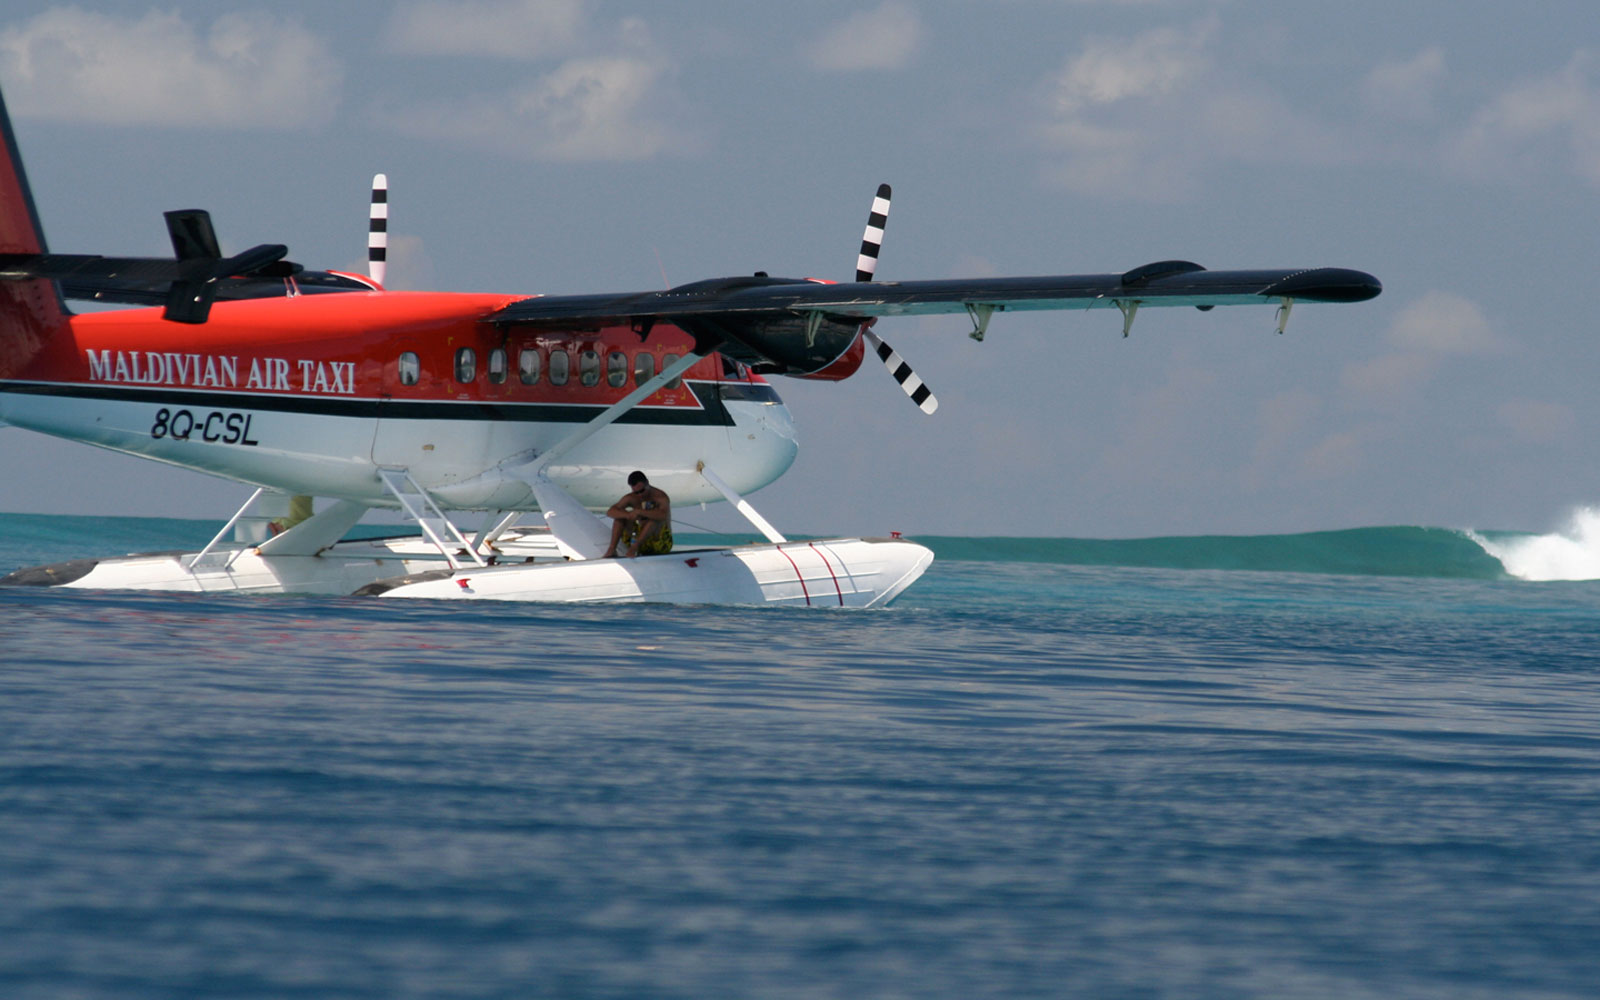 Seaplane Surf Safari around the Maldives. Ultimate Christmas Presents For Surfer Girls